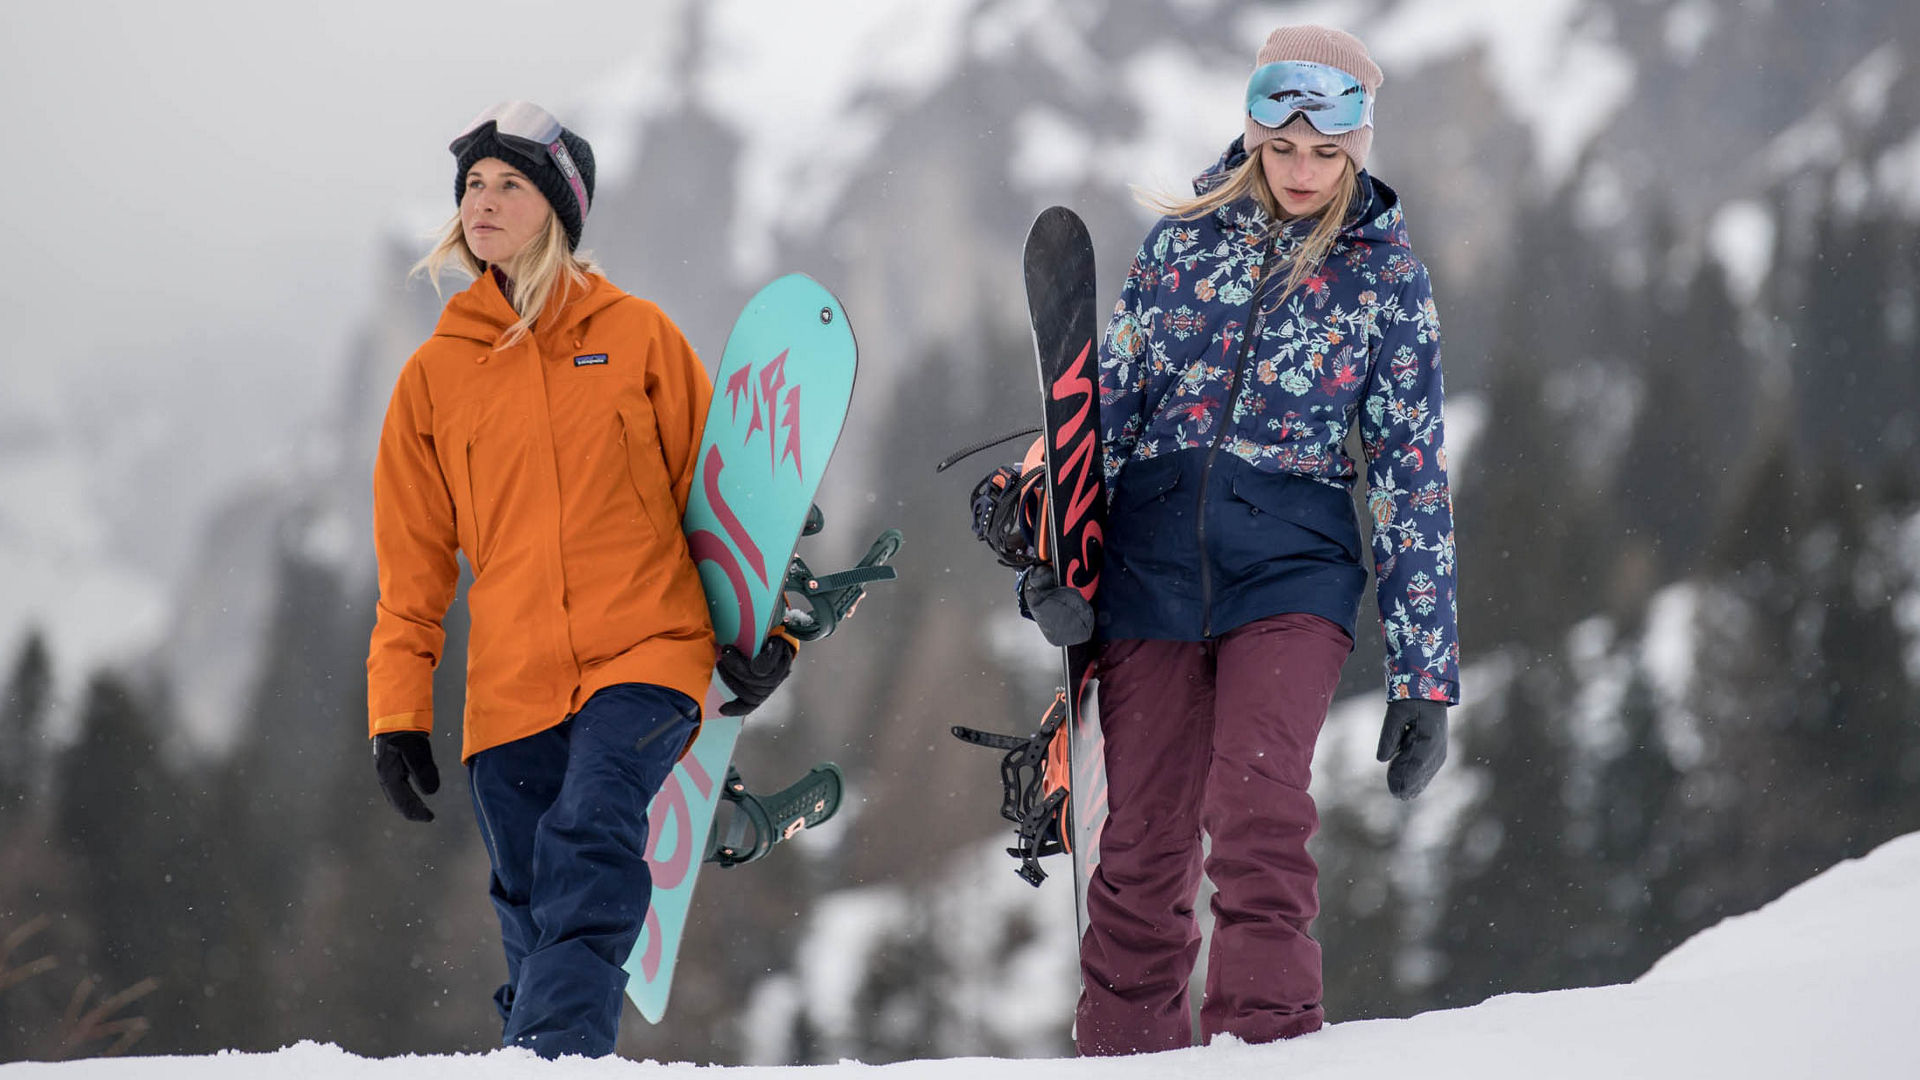 Two women walking with their snowboard in the mountains equipped with snowear from Patagonia